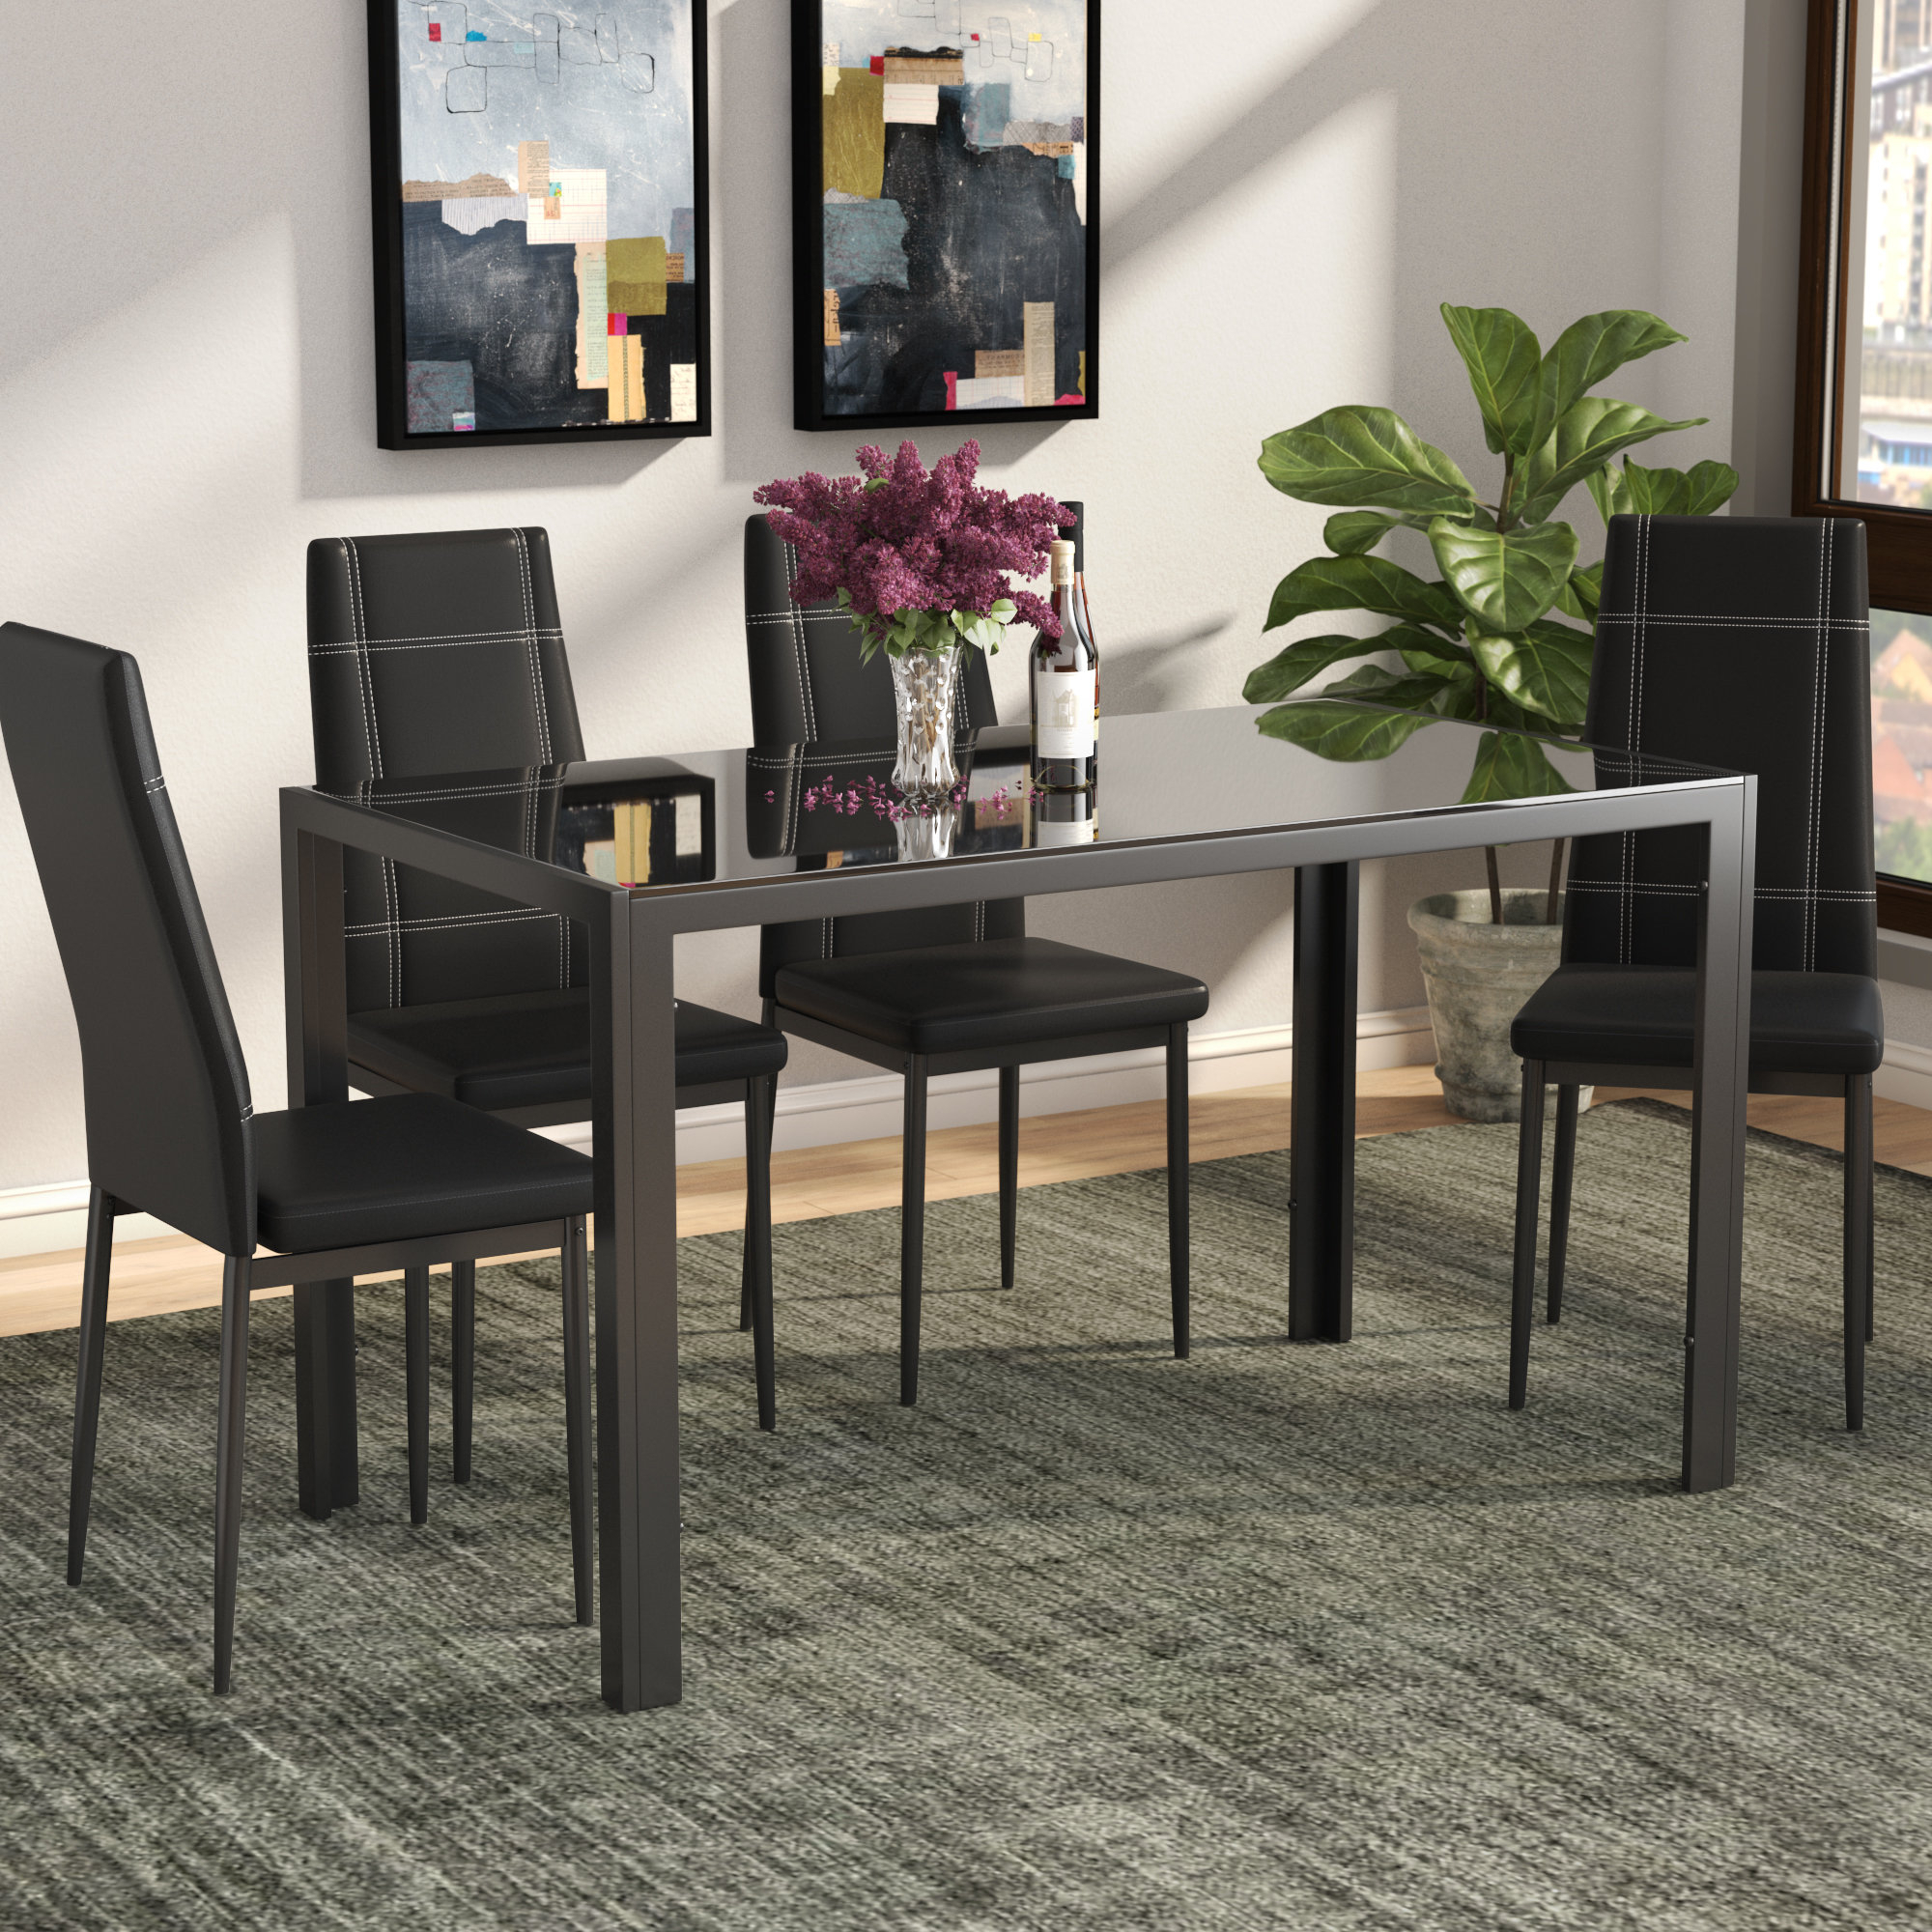 Wayfair Throughout Autberry 5 Piece Dining Sets (View 20 of 25)